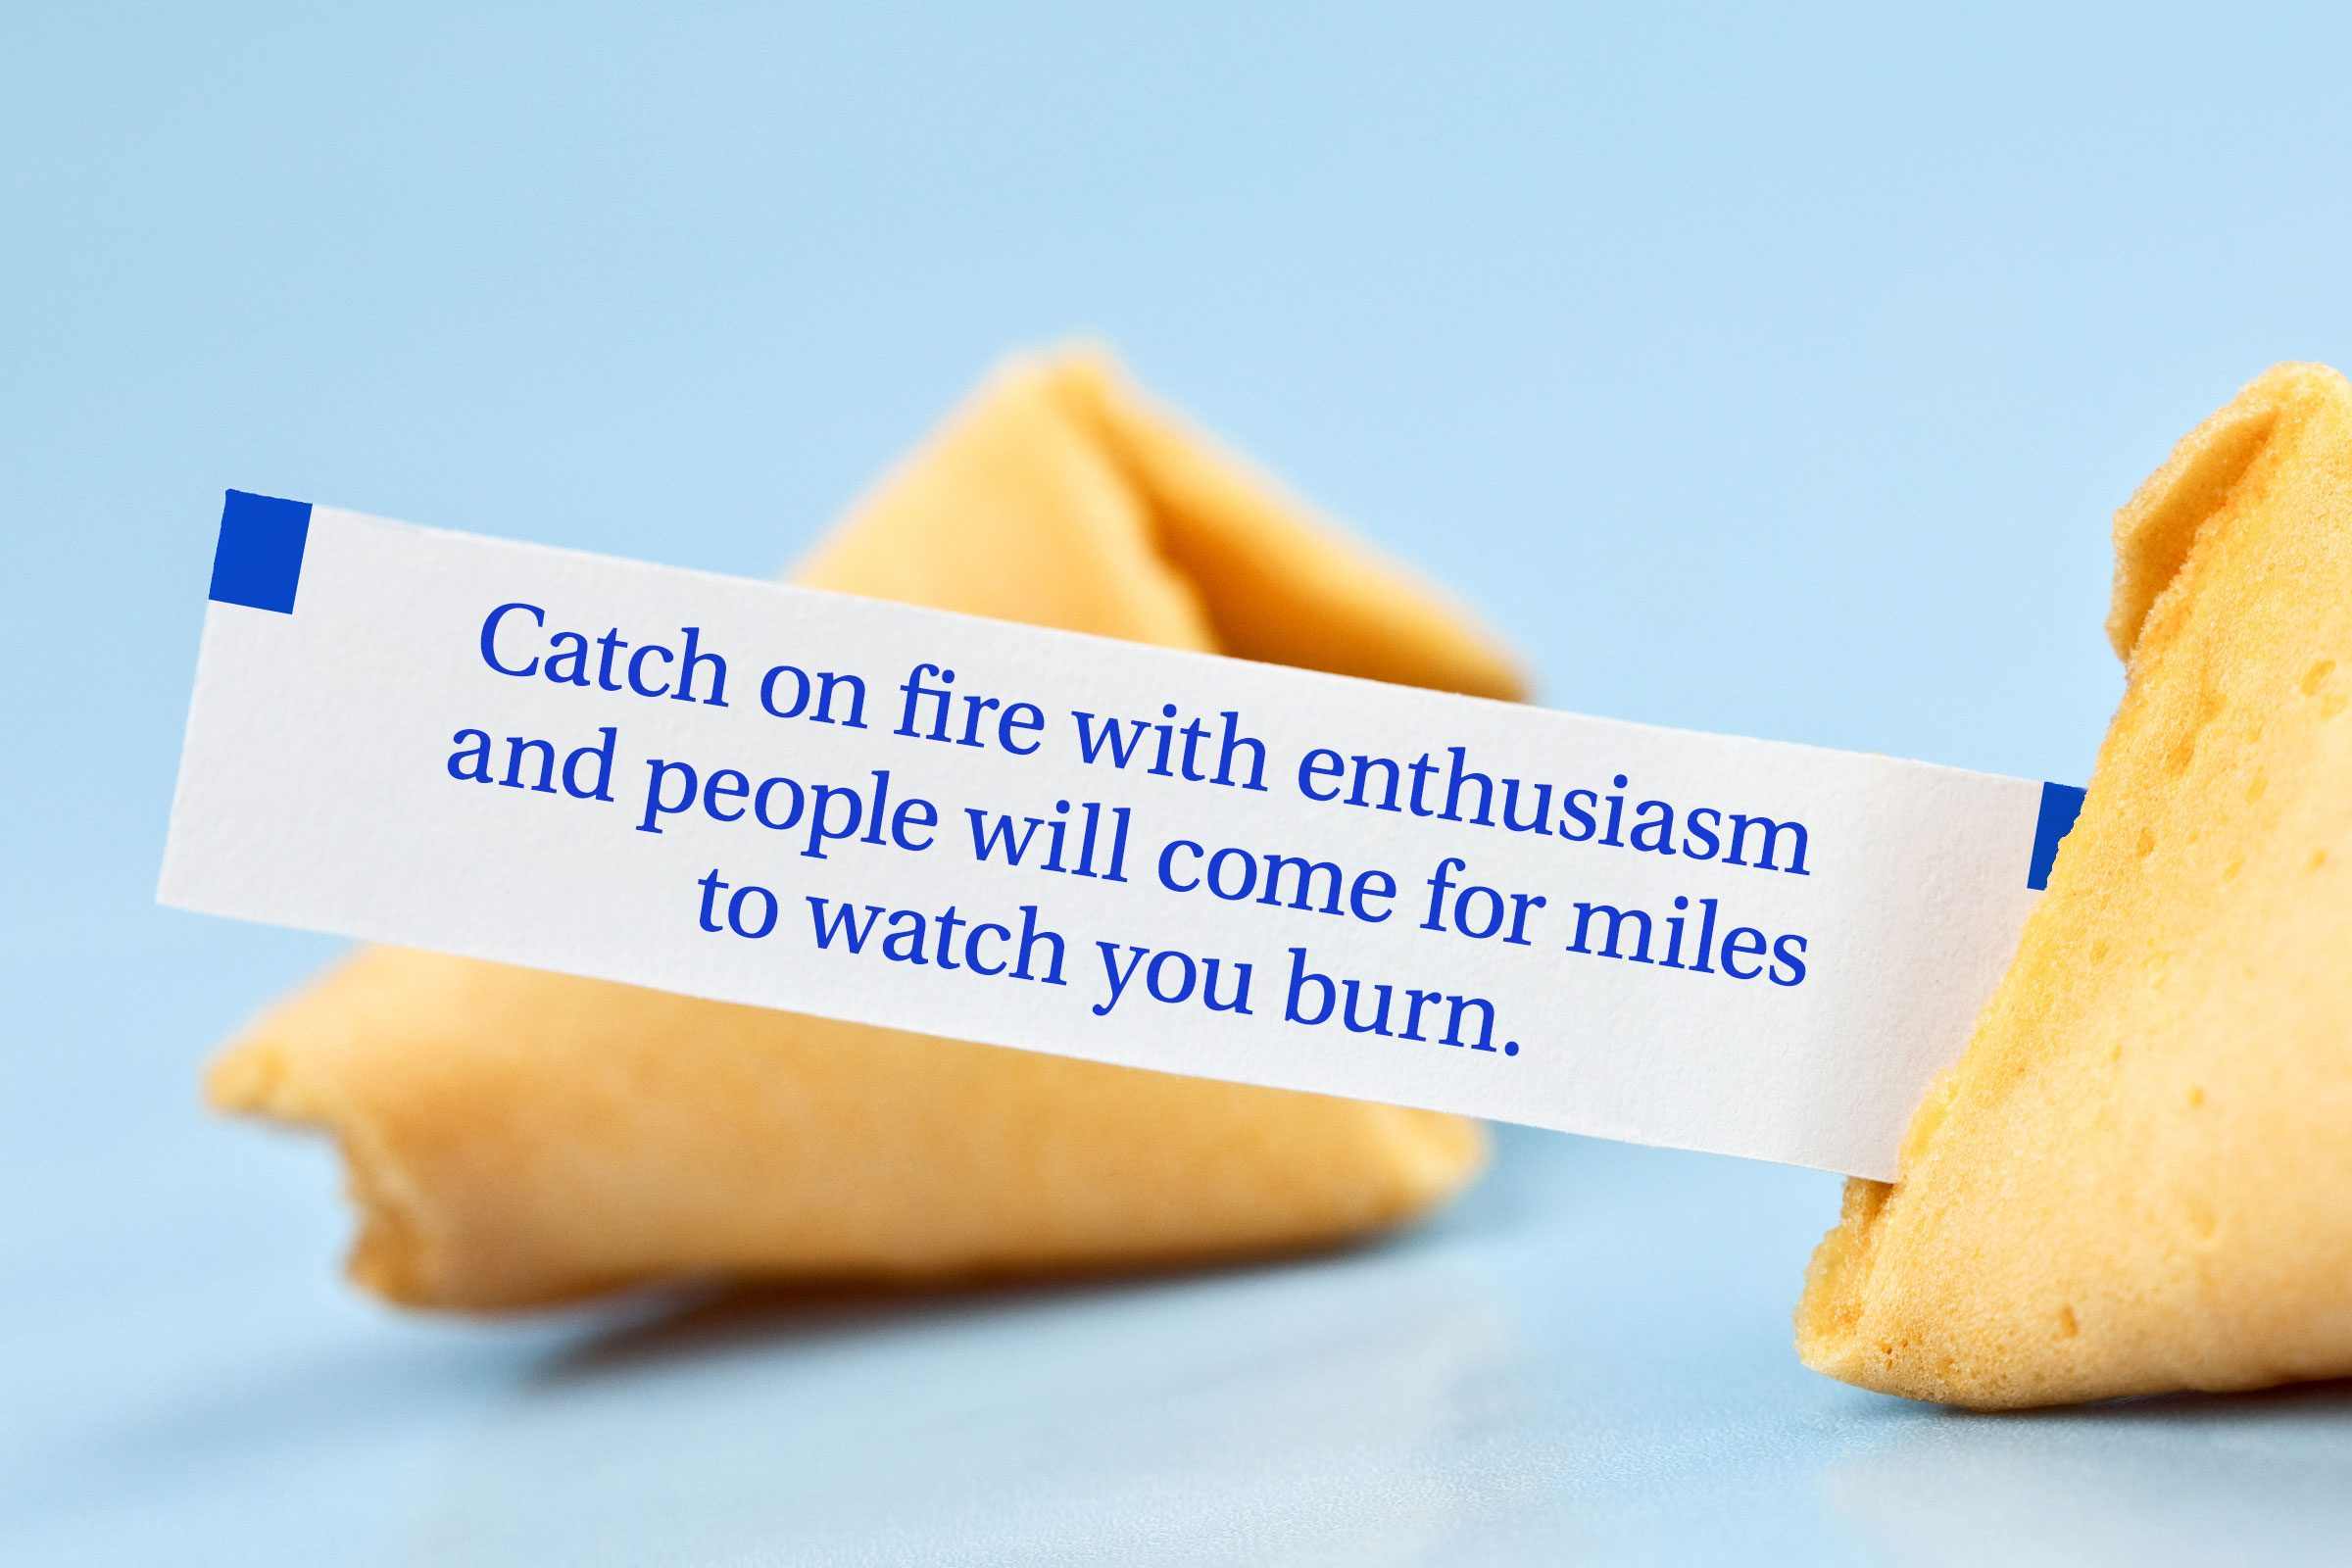 For image: Catch on fire with enthusiasm and people will come for miles to watch you burn.